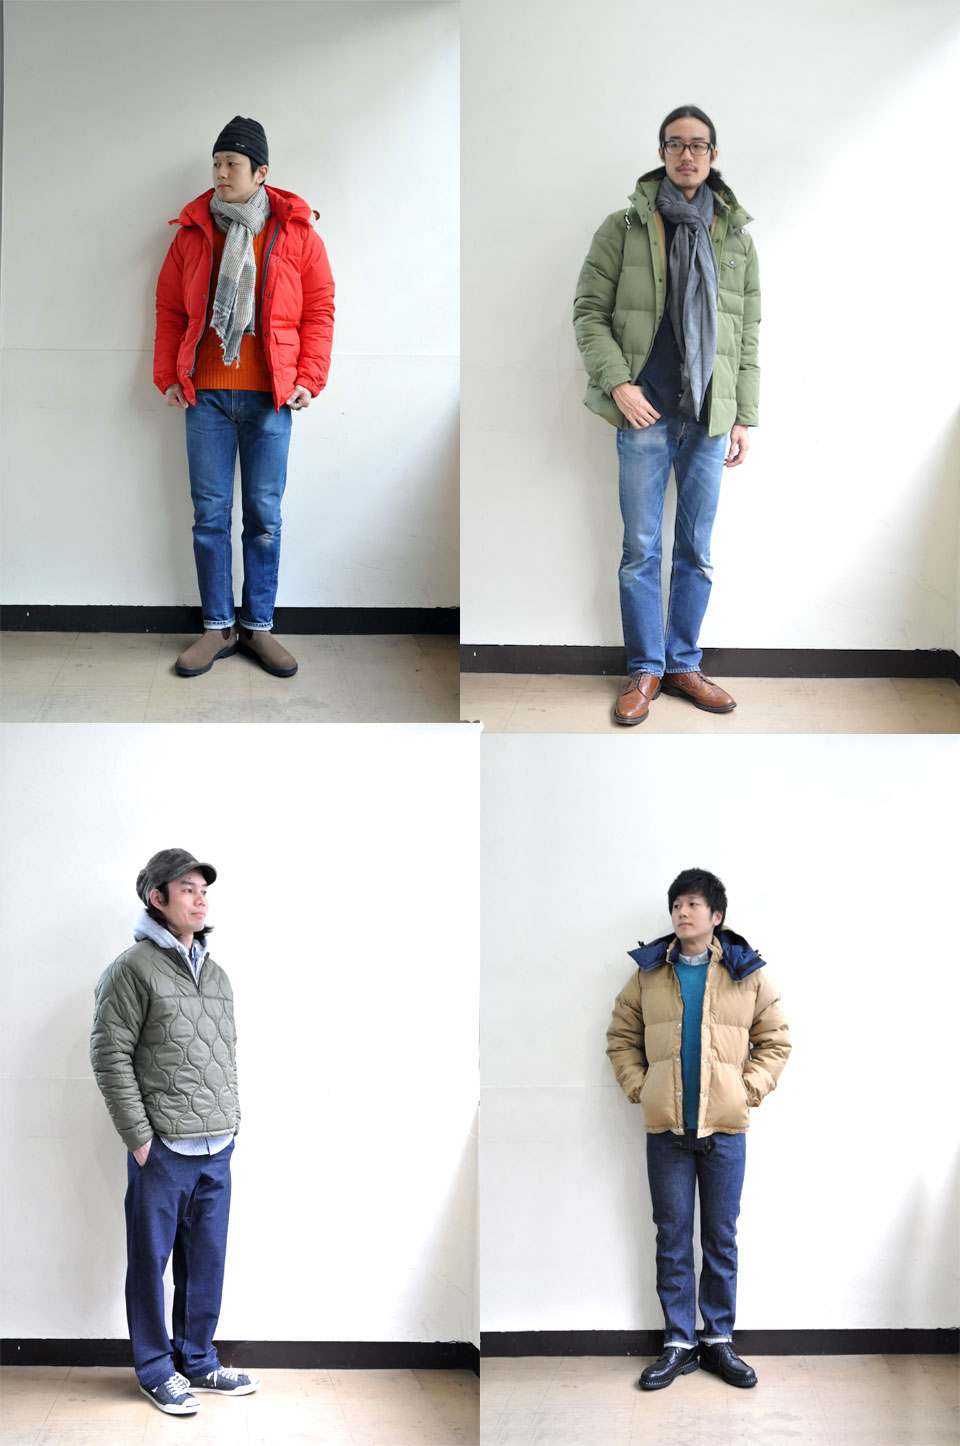 zaboustylefeature06-1